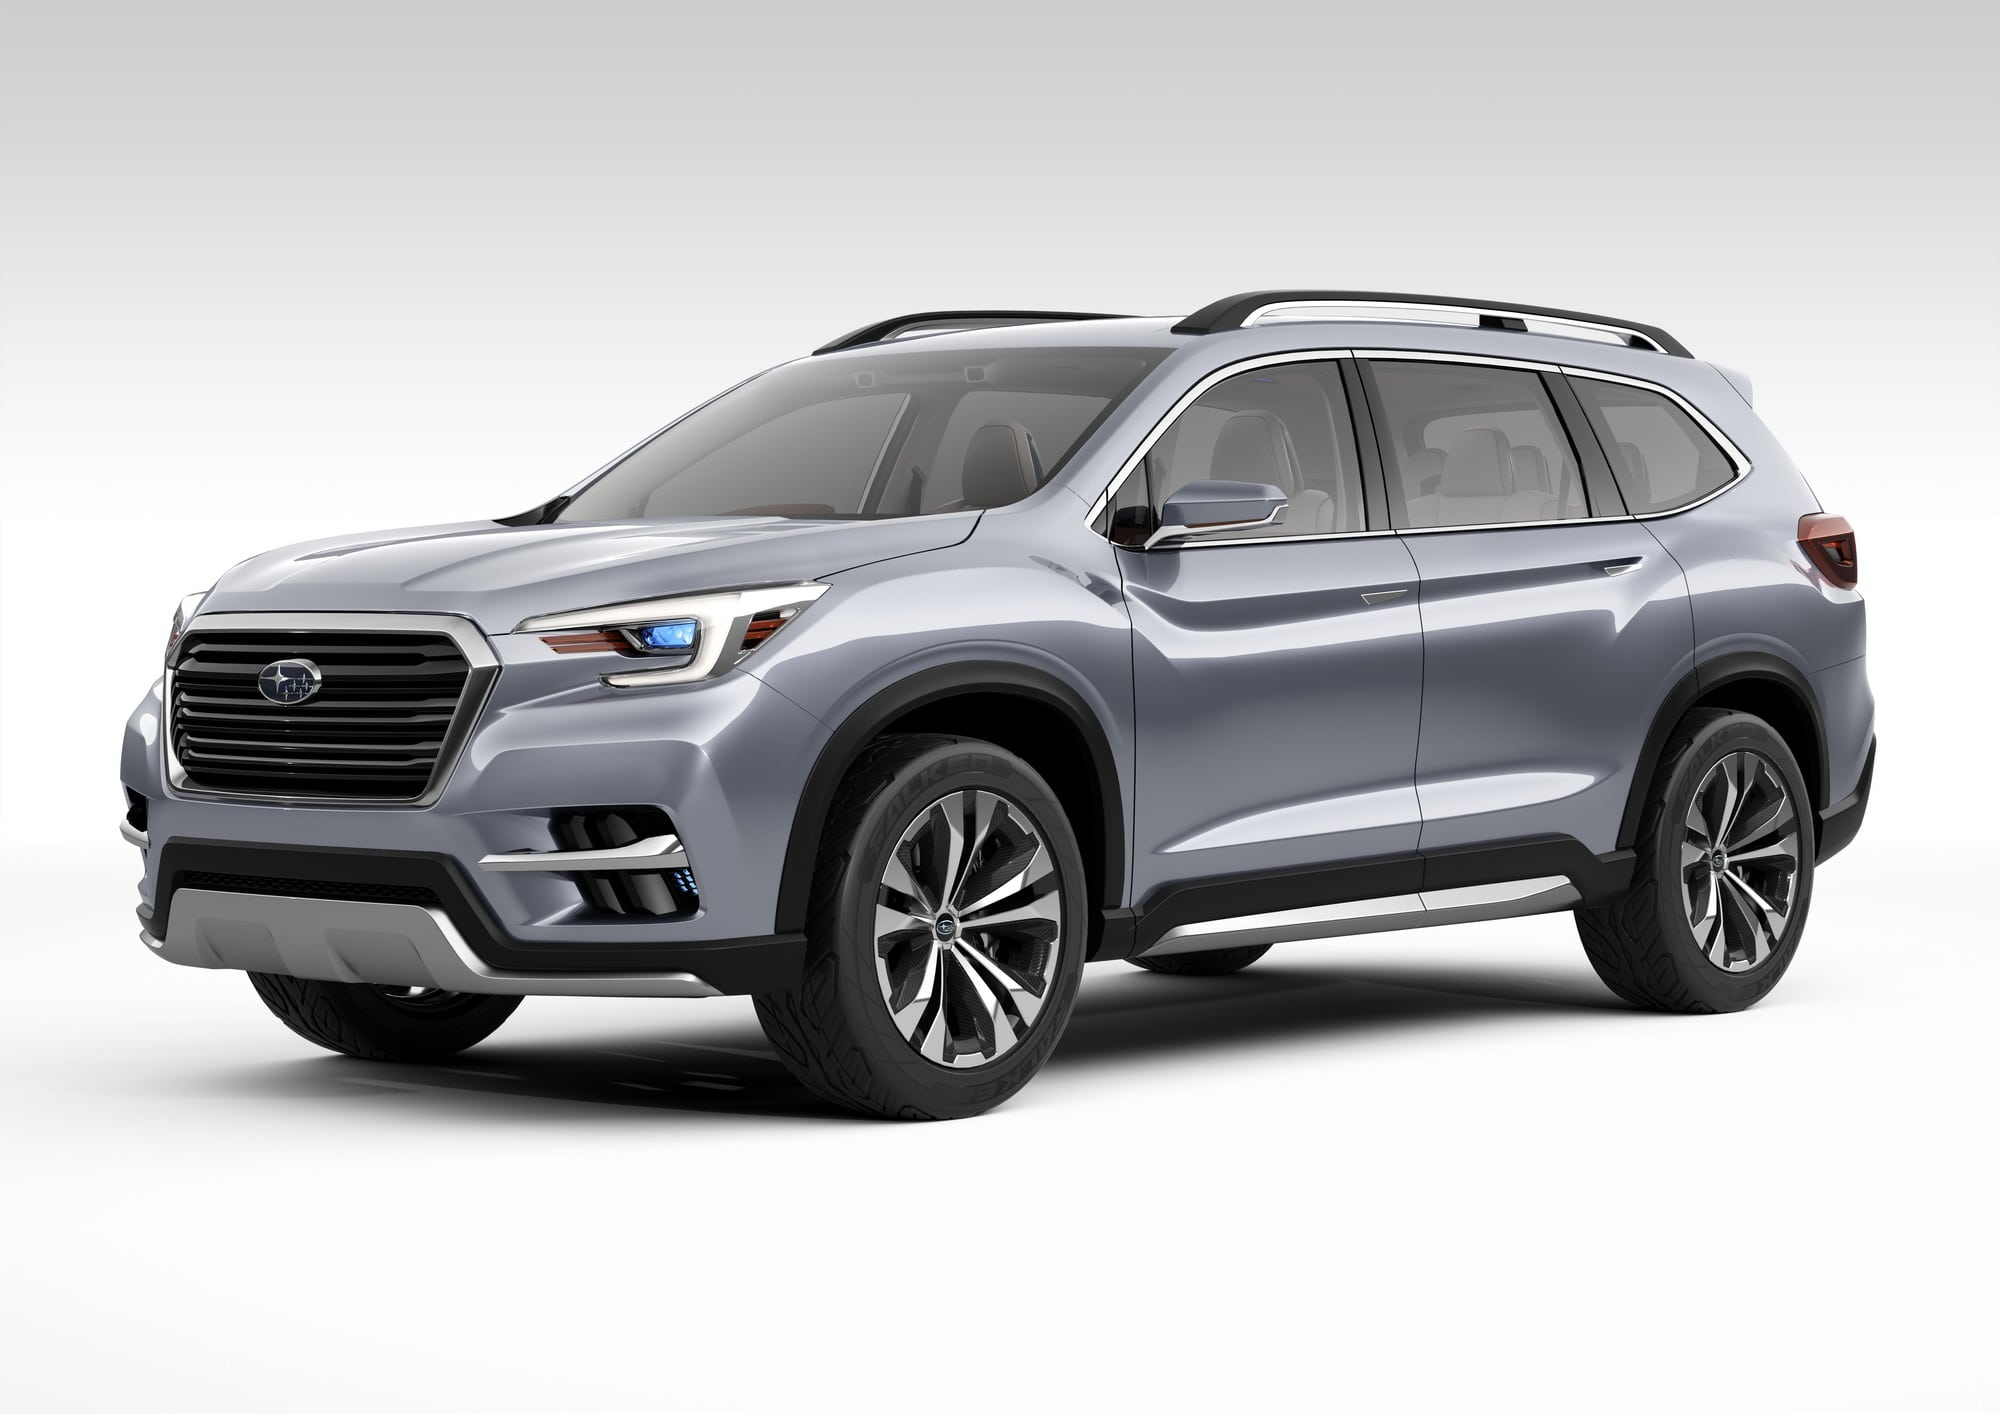 subaru reveals new ascent 3 row suv concept production coming soon carnewscafe. Black Bedroom Furniture Sets. Home Design Ideas